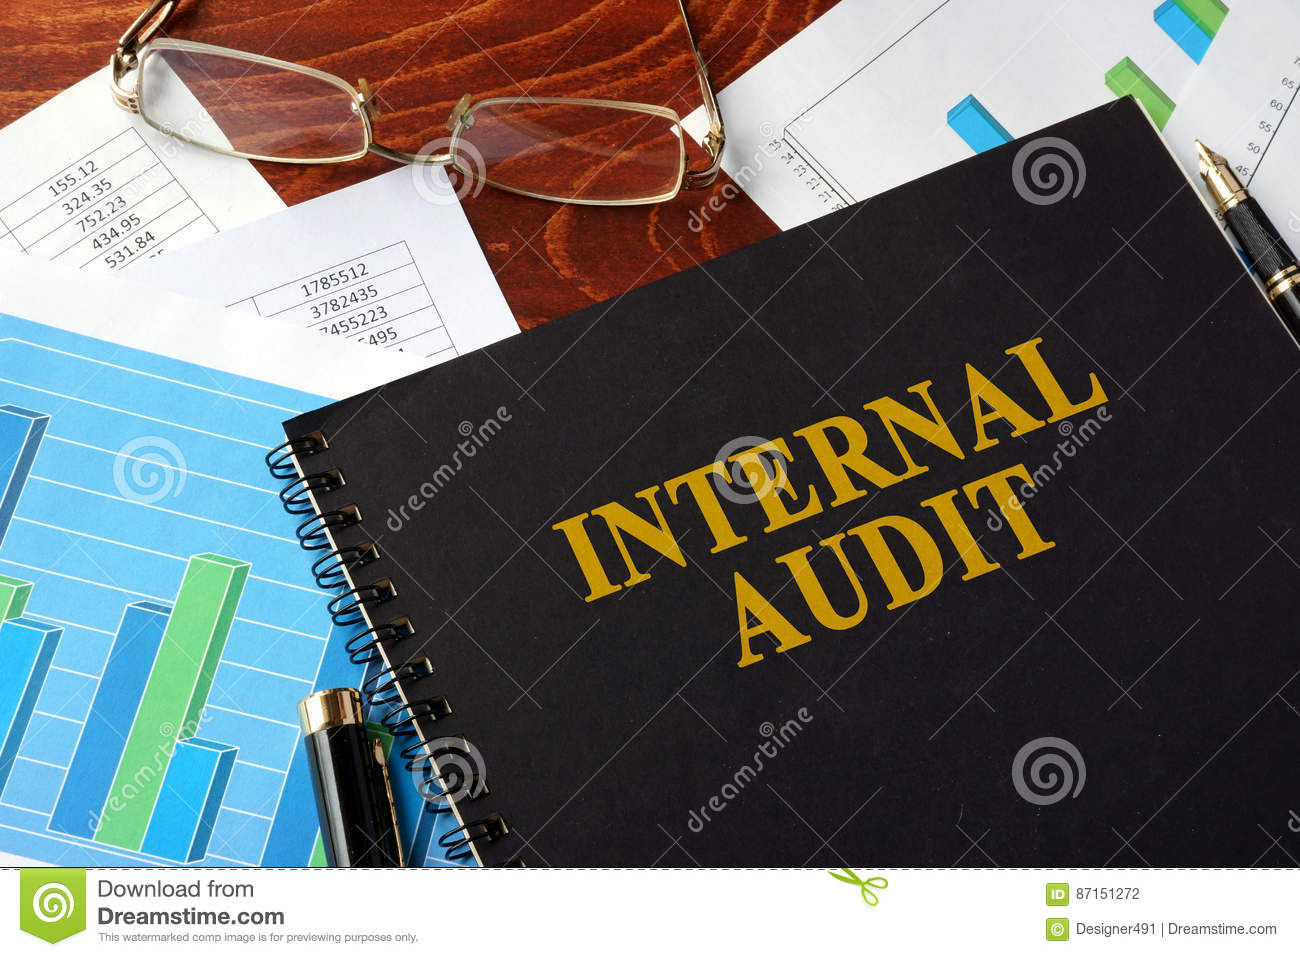 internal audit in shipping companies How a shipping company works and what risks and controls each department should have as a minimum in their framework • useful insights from shipping industry and many practical examples in the class associated with financial, operating and compliance controls • full knowledge how a shipping company works and which robust internal control framework to use.